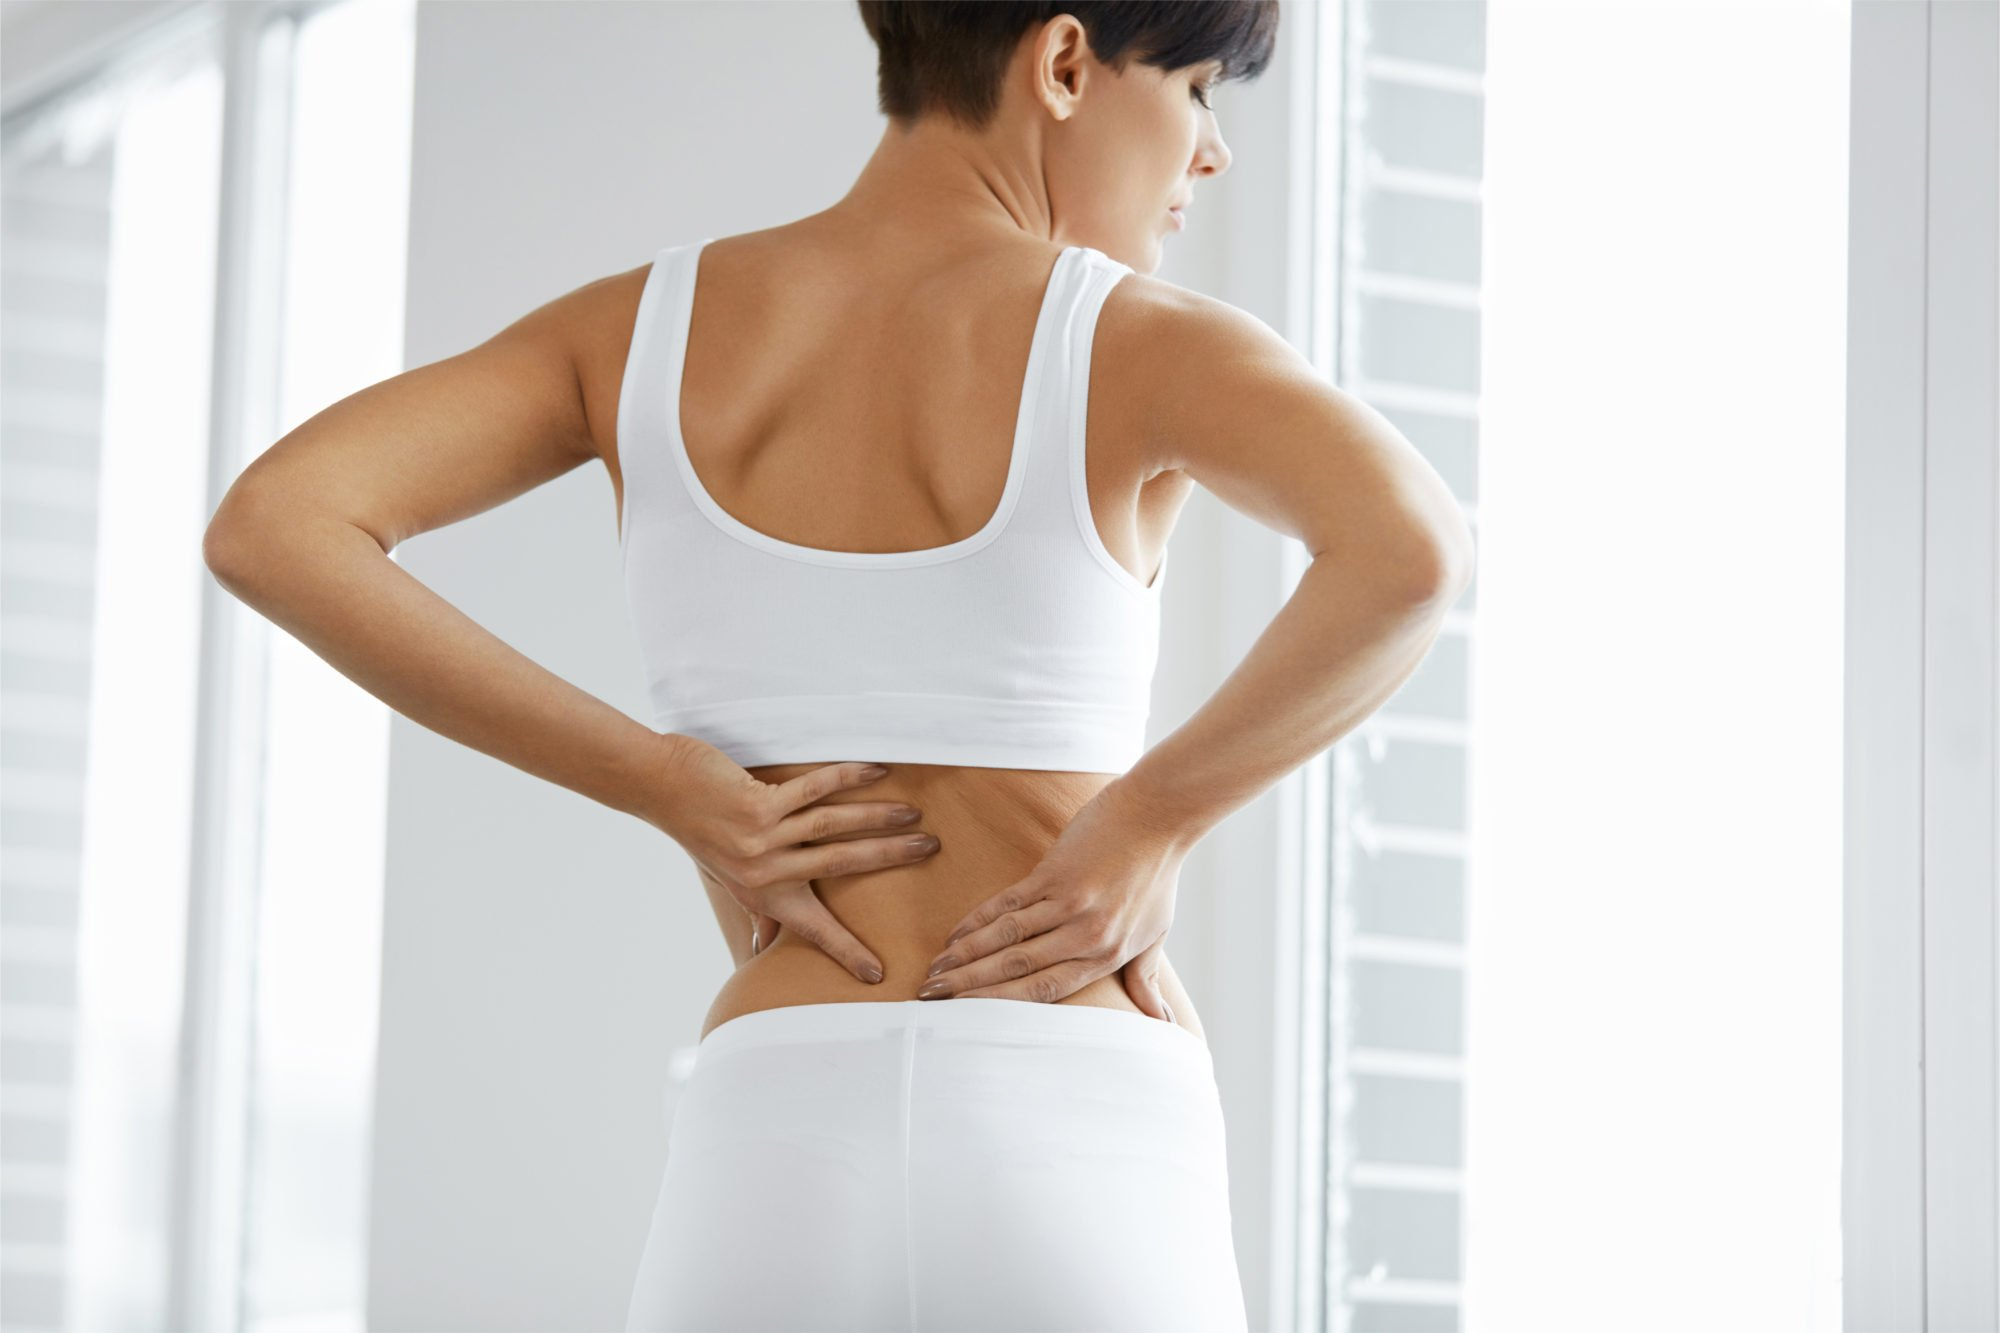 Tips to Reduce Lower Back Pain During Periods